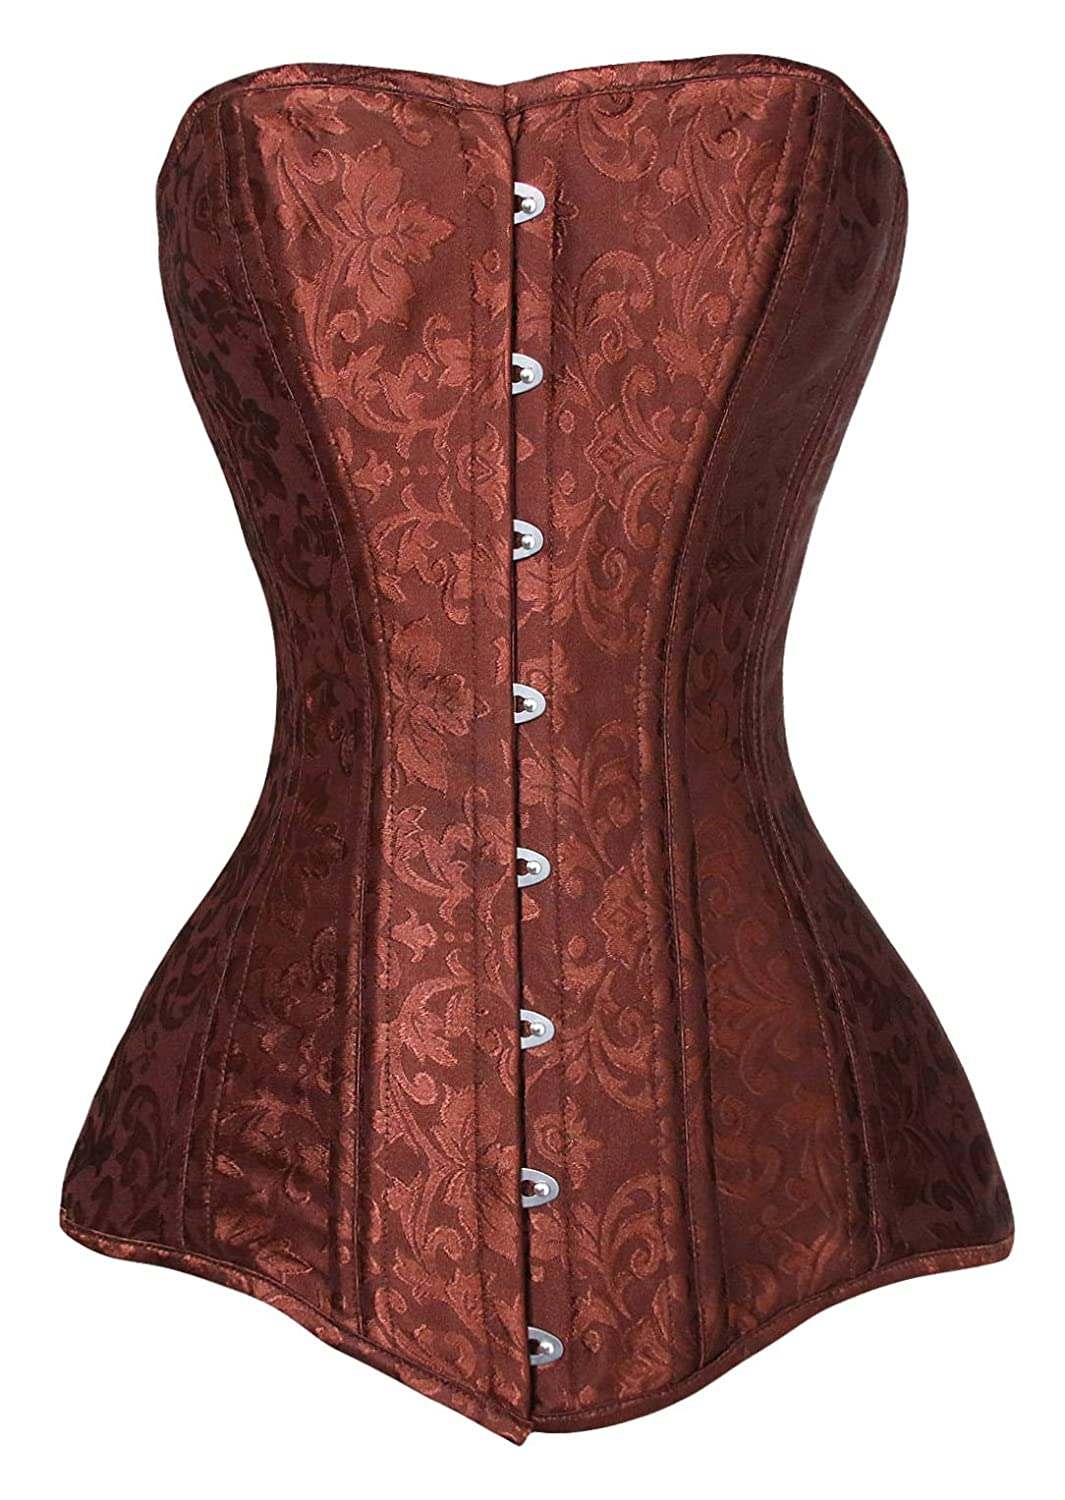 Charmian Women's Sipral Steel Boned Long Torso Gothic Steampunk Overbust Corset CA0000806